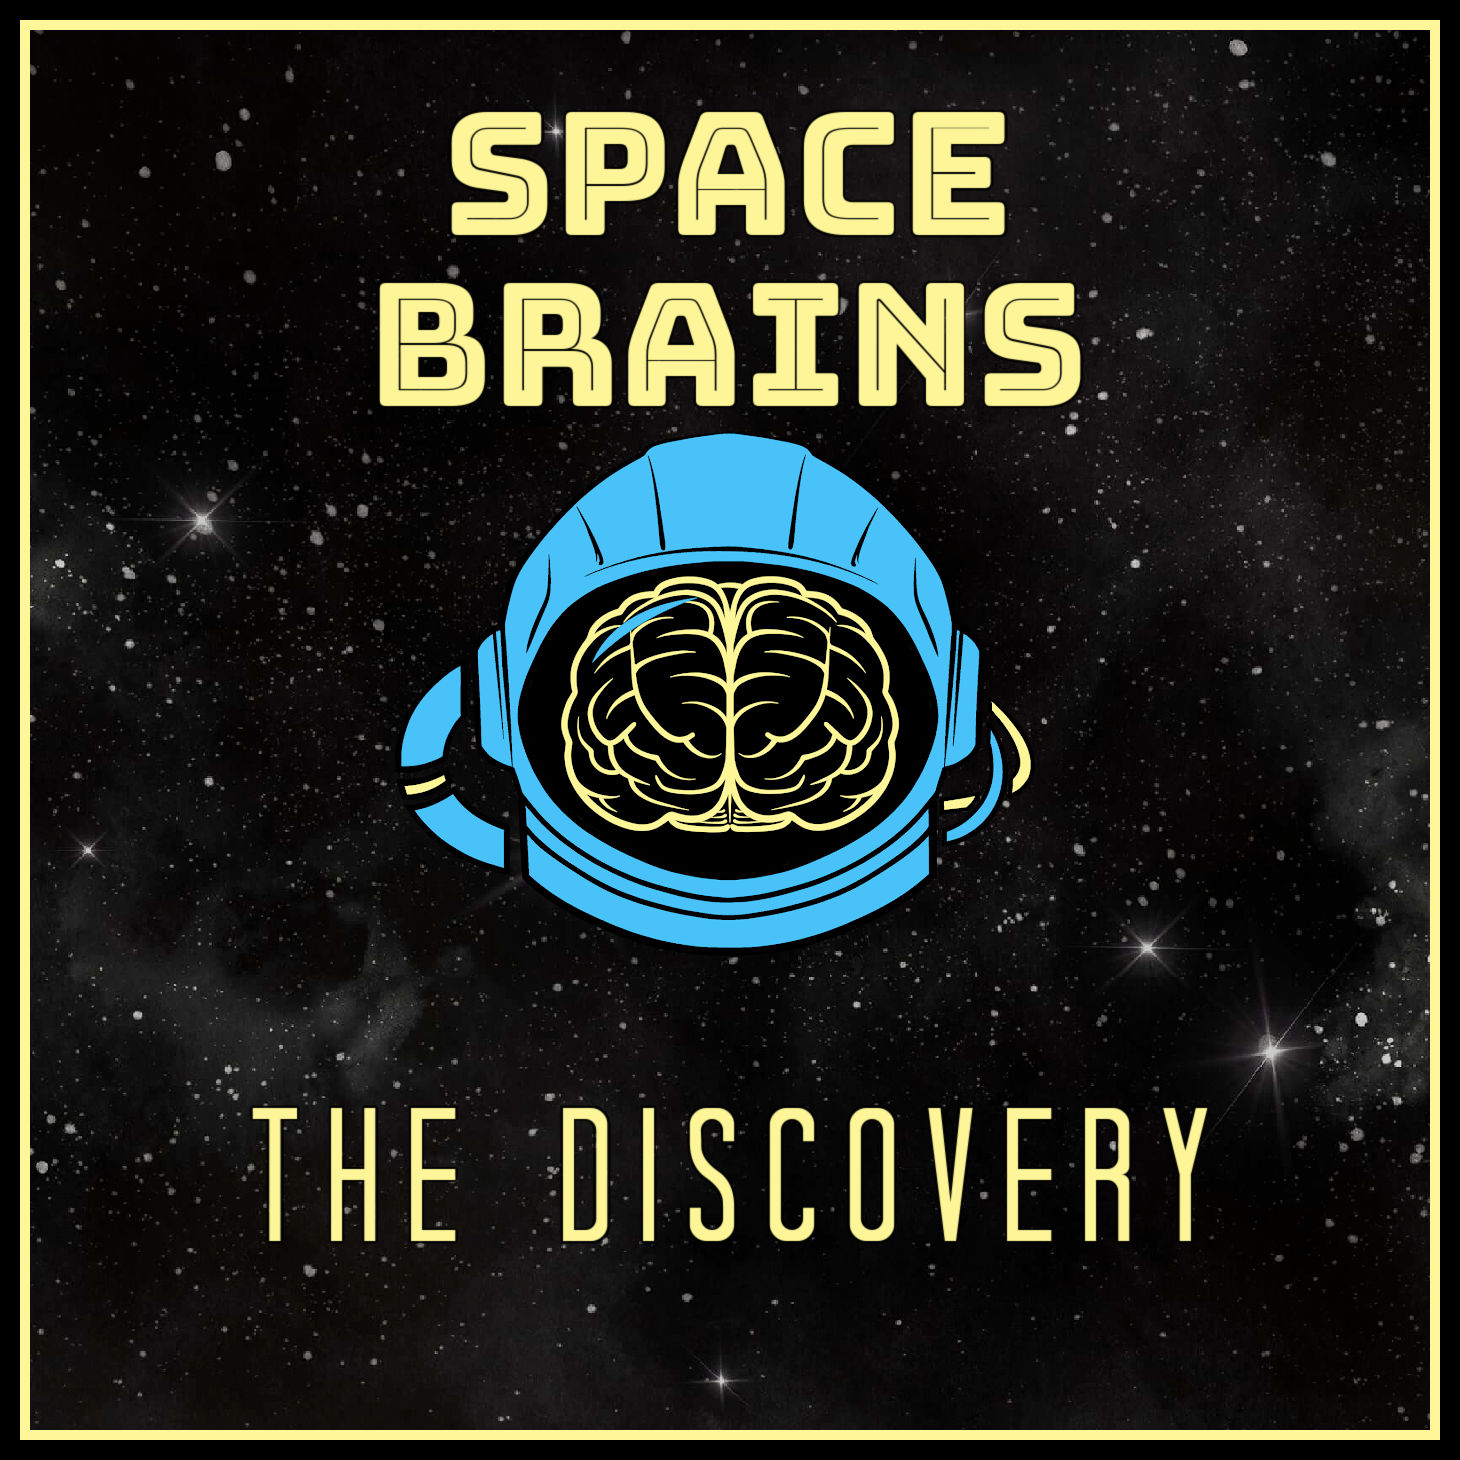 Space Brains - 52 - The Discovery